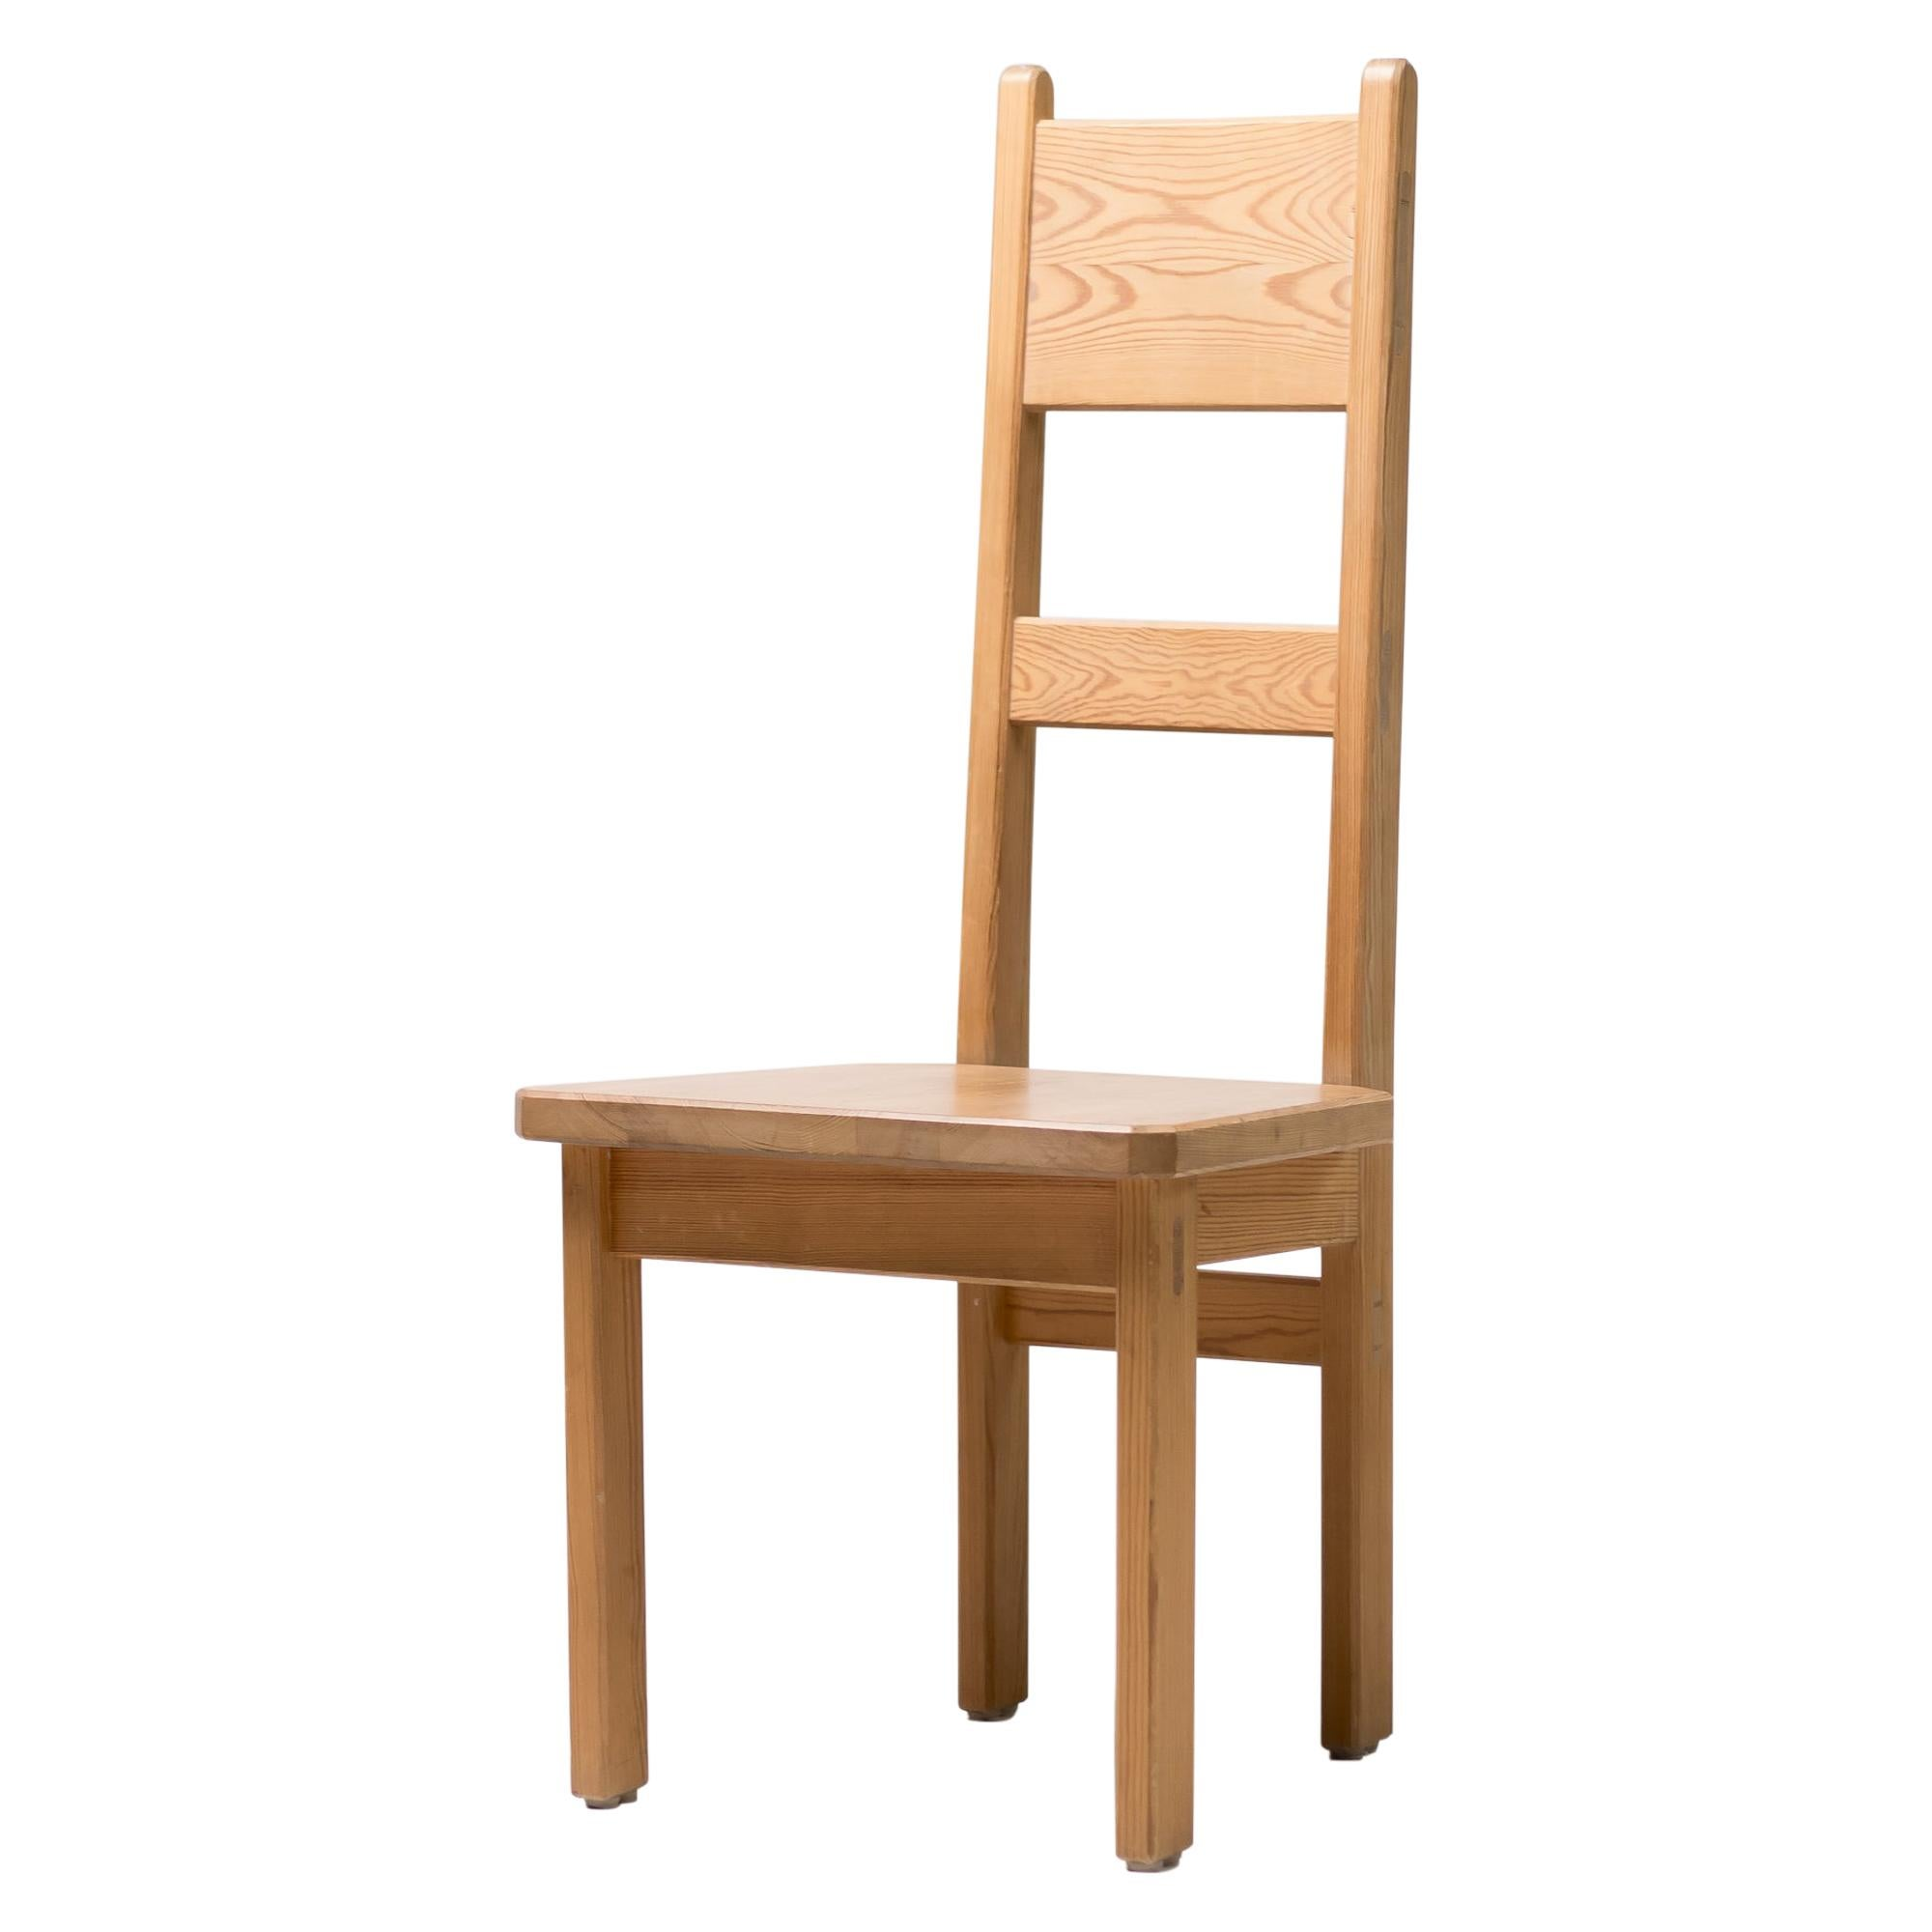 Six Oregon Pine High Back Chairs by Roland Wilhelmsson